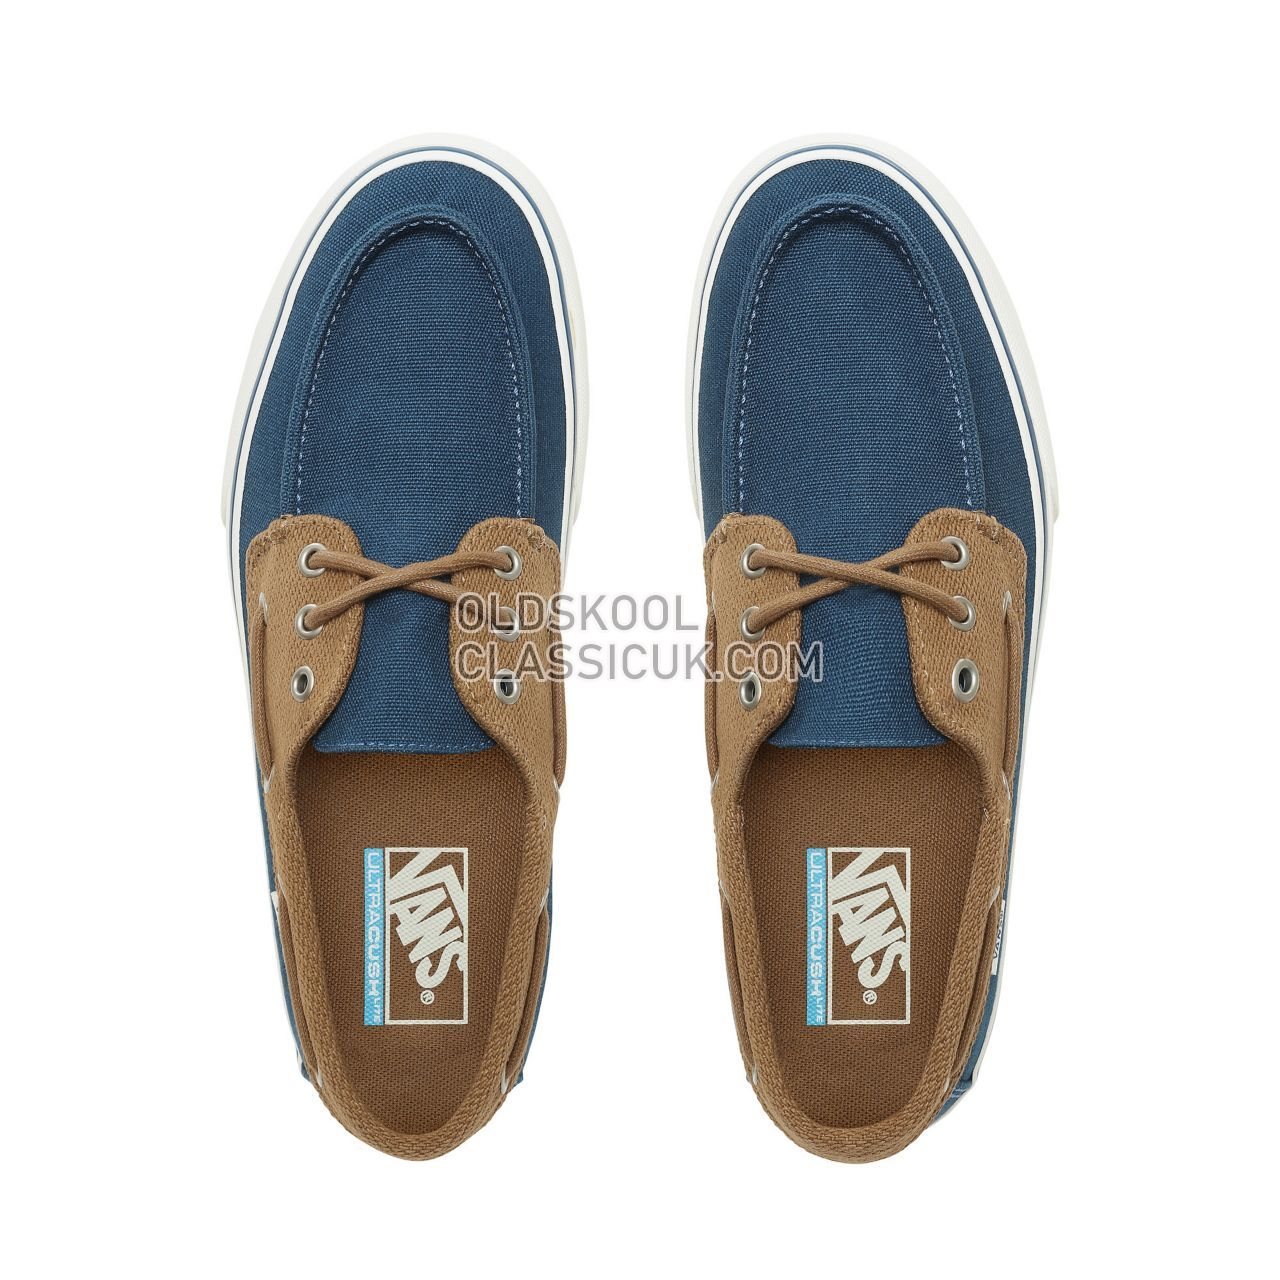 5c5f17d0347 ... Vans Chauffeur SF Sneakers Mens Sailor Blue Breen VN0A3MUBVLN Shoes